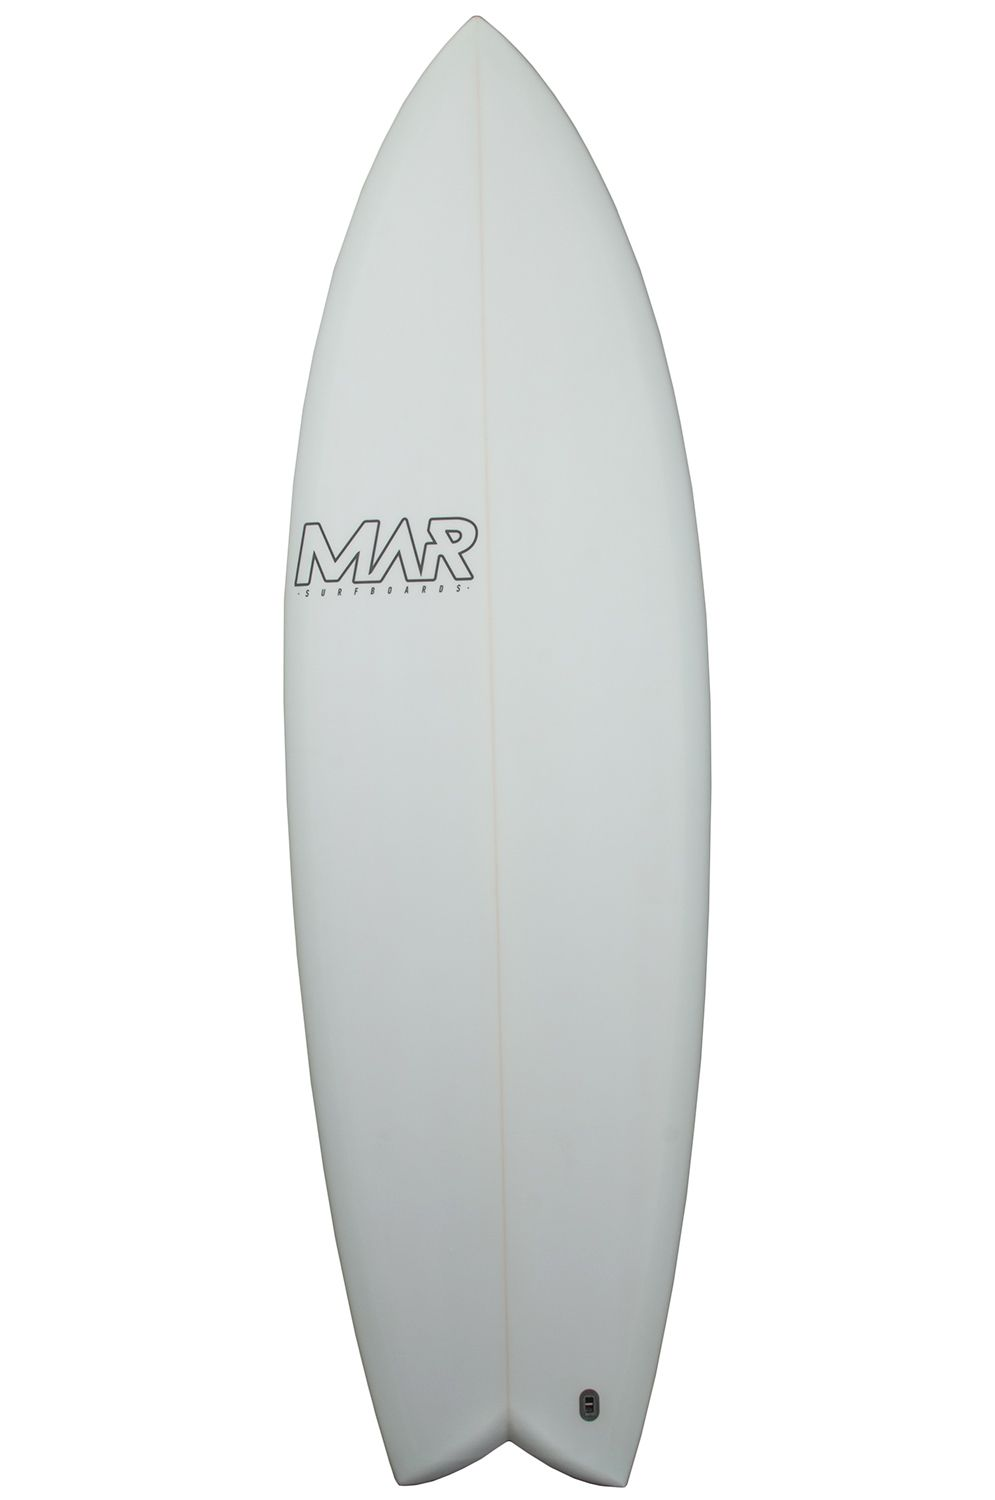 Prancha Surf Mar 6'4 THE 4 MINT Fish Tail - Color FCS II Multisystem 6ft4